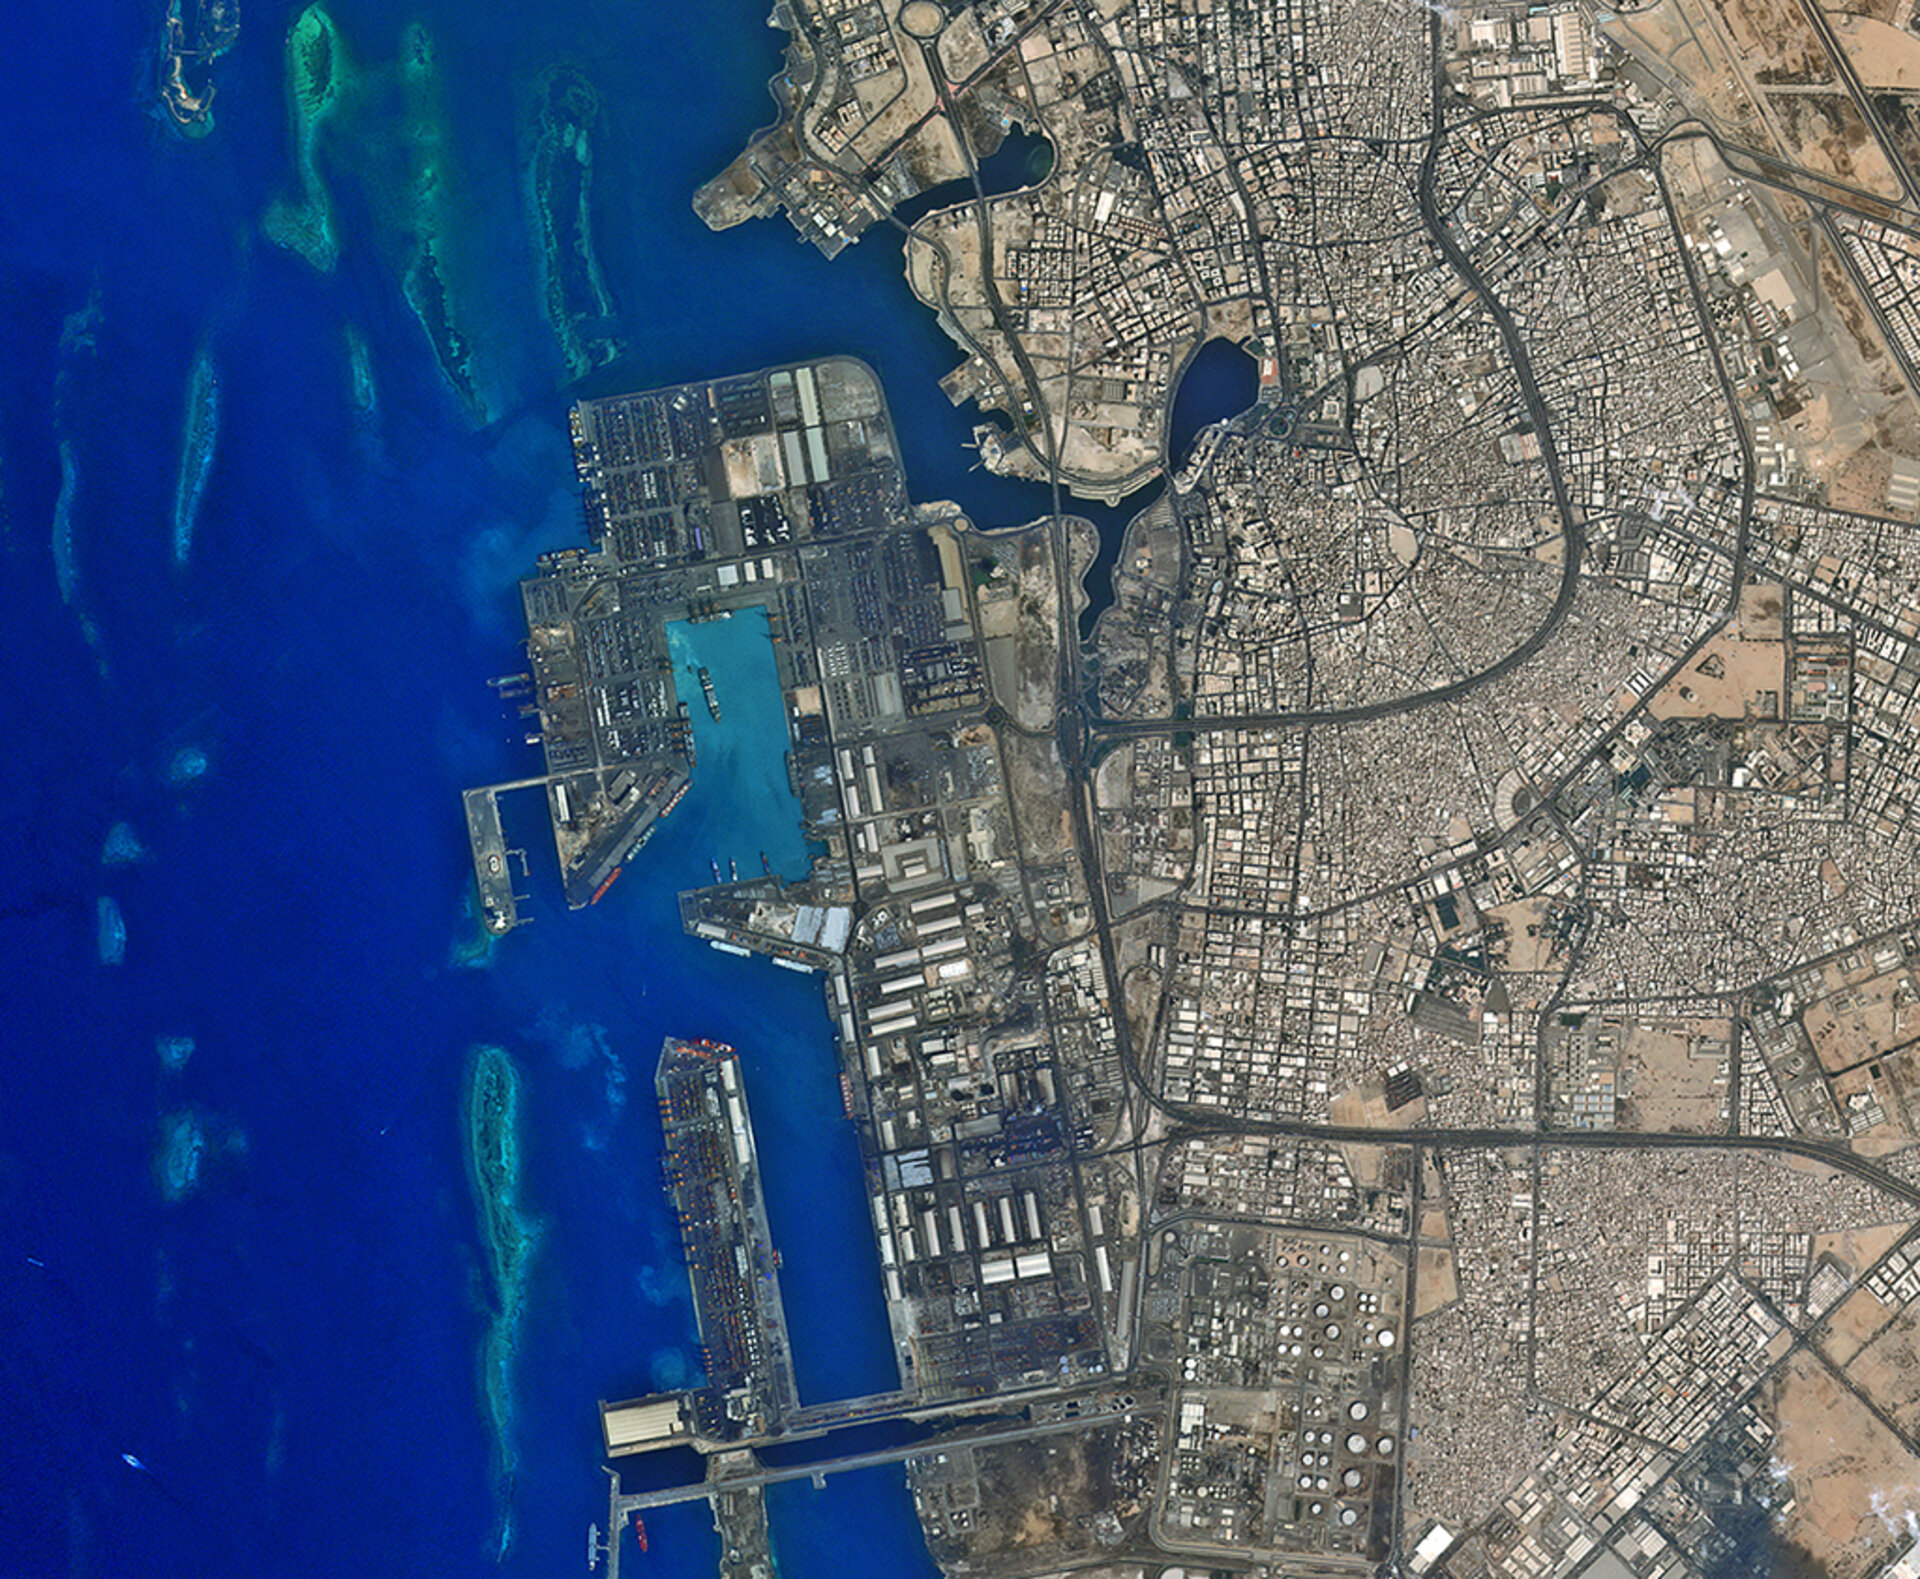 Jeddah's seaport on Saudi Arabia's western coast